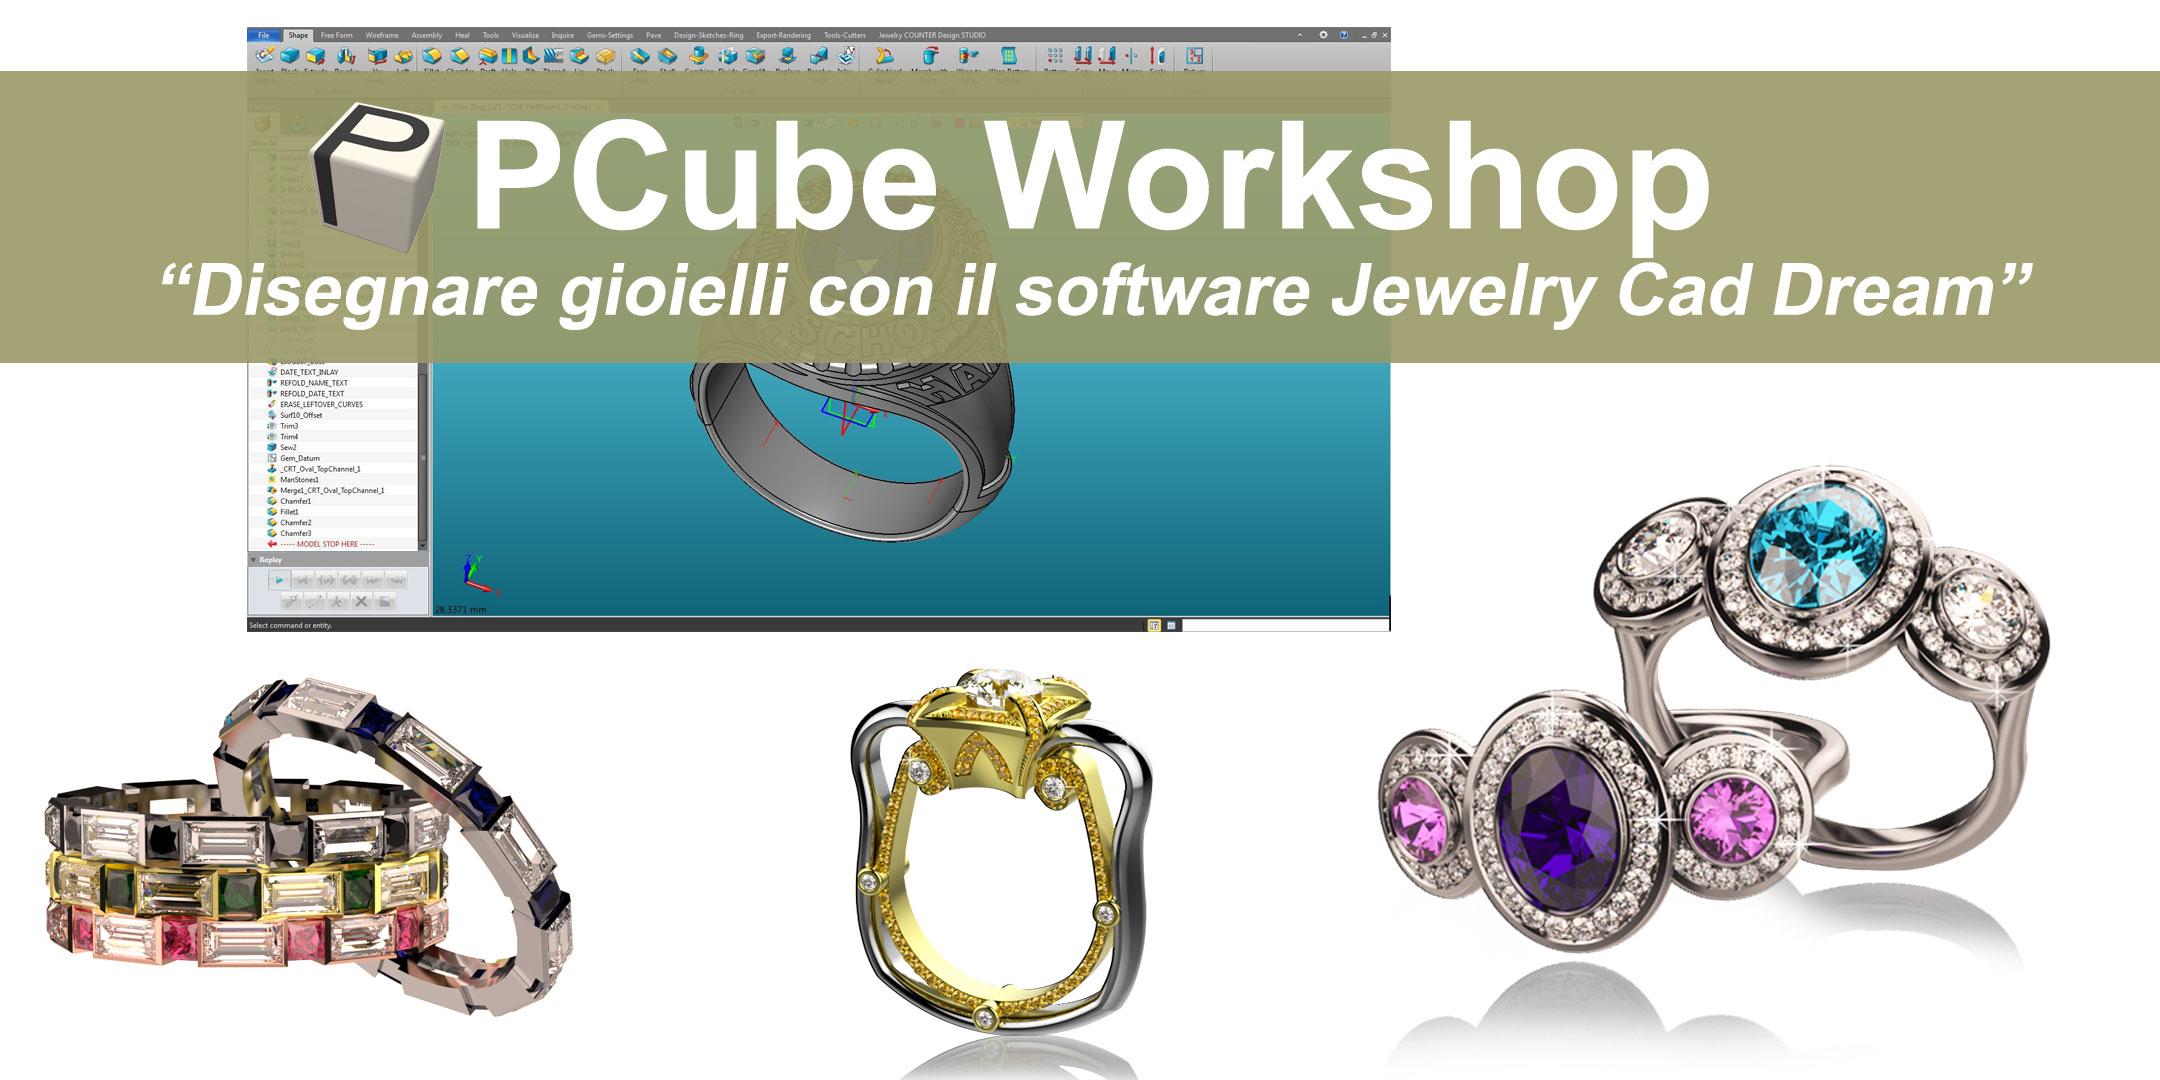 Disegnare gioielli con il software Jewelry Cad Dream